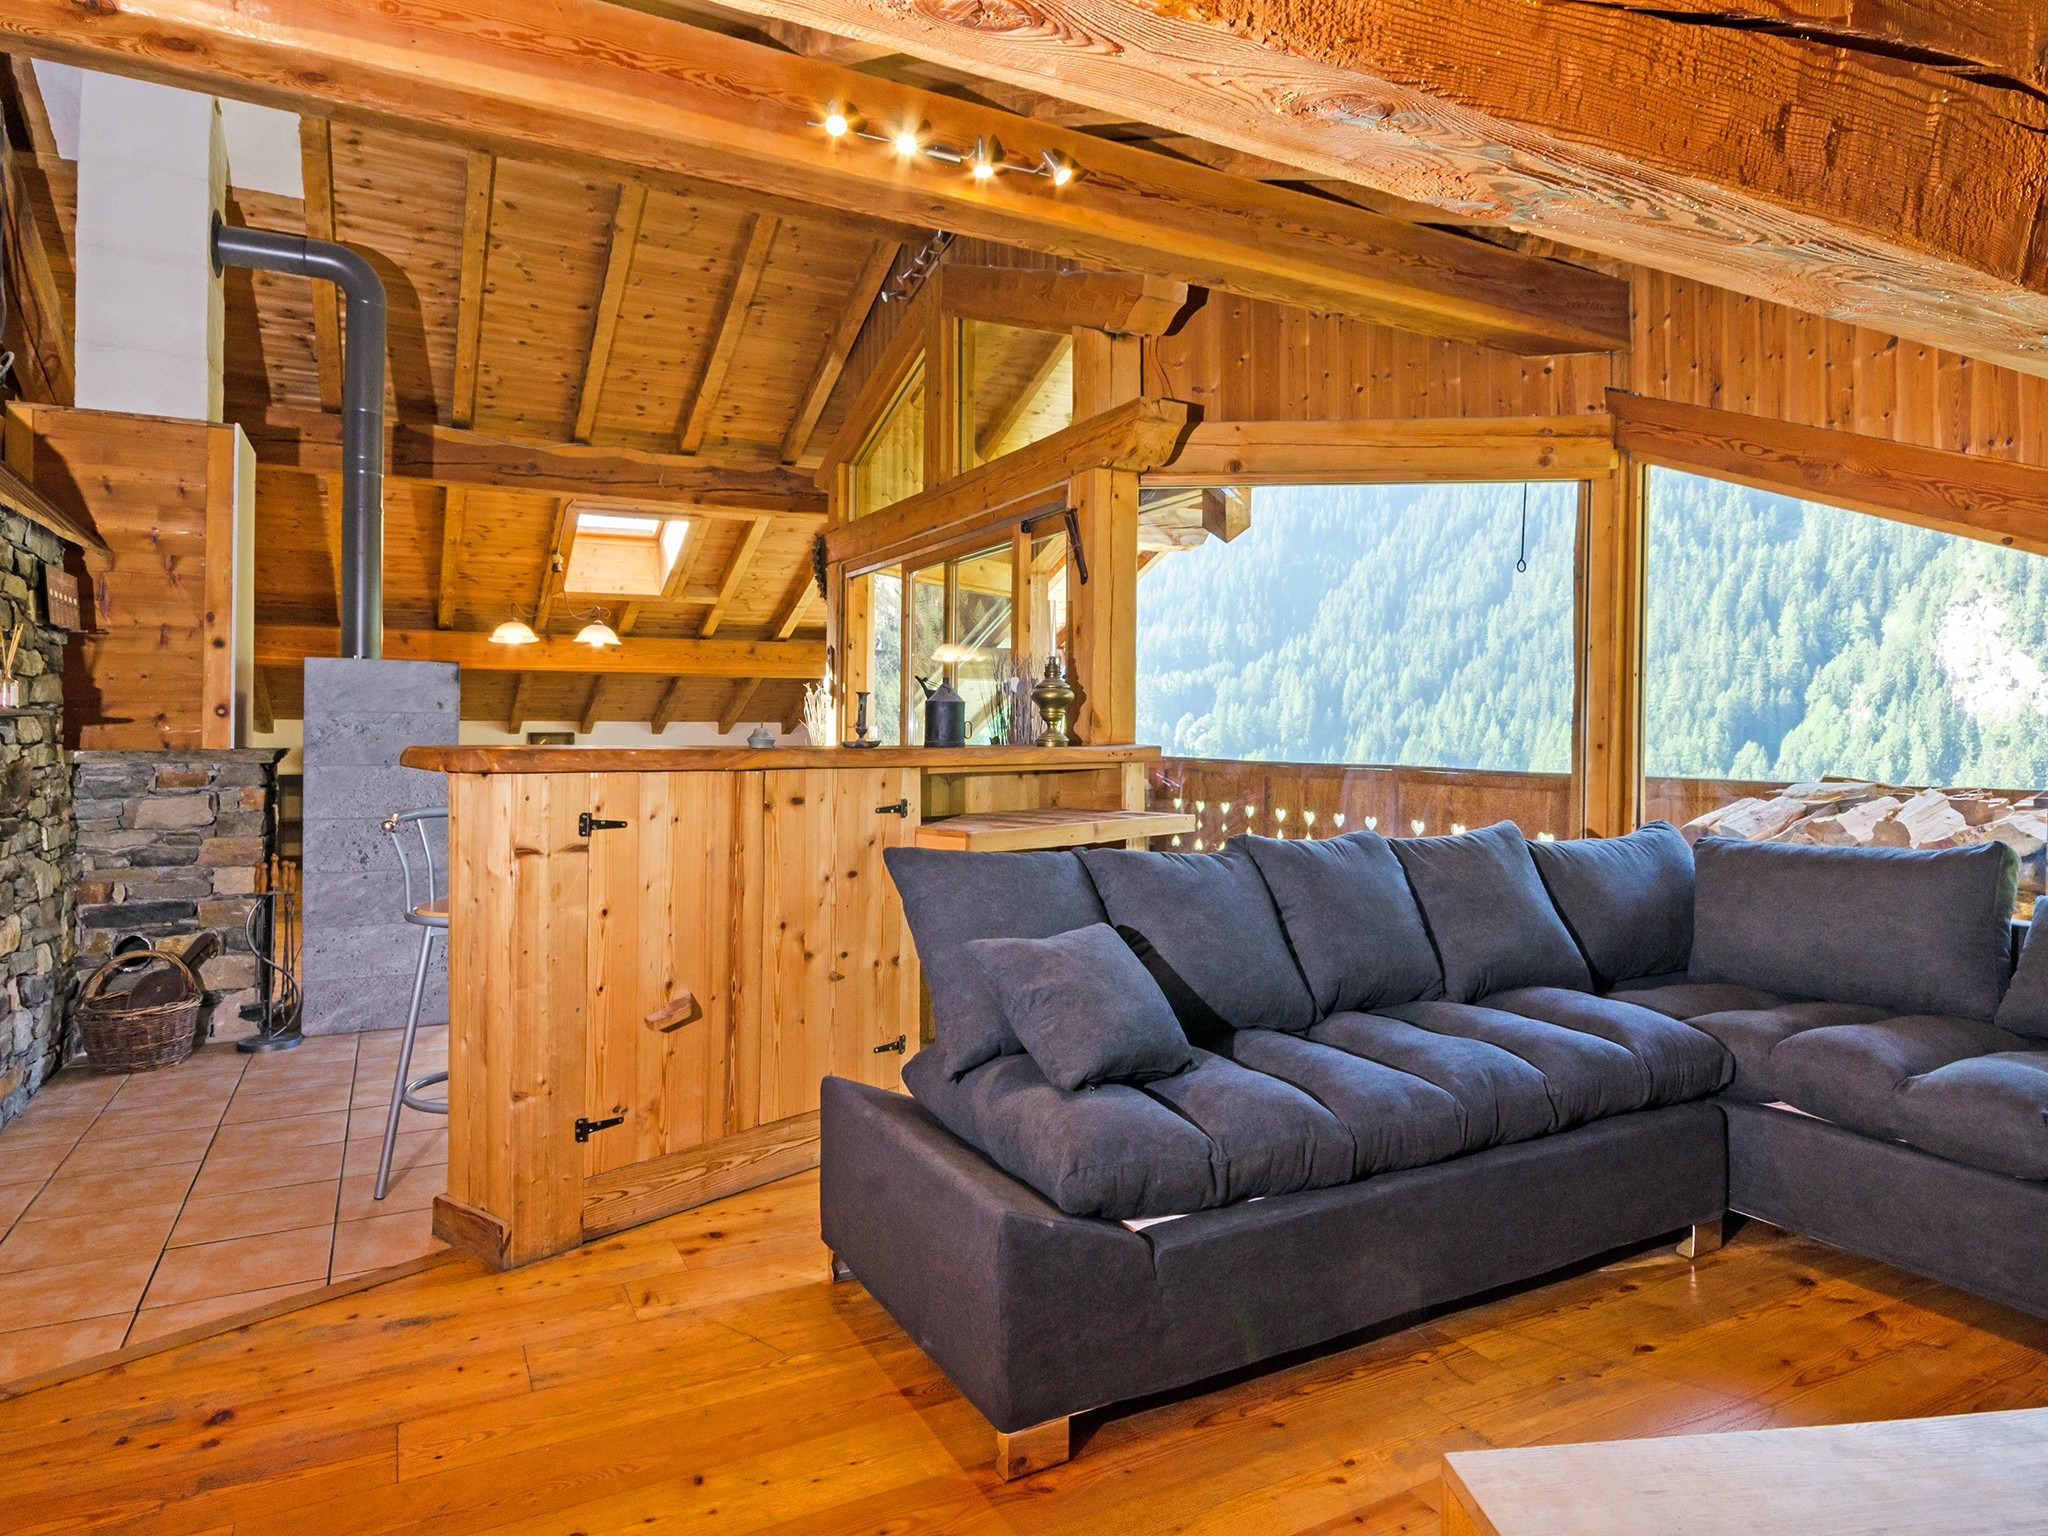 Chalet Ulysse - living room